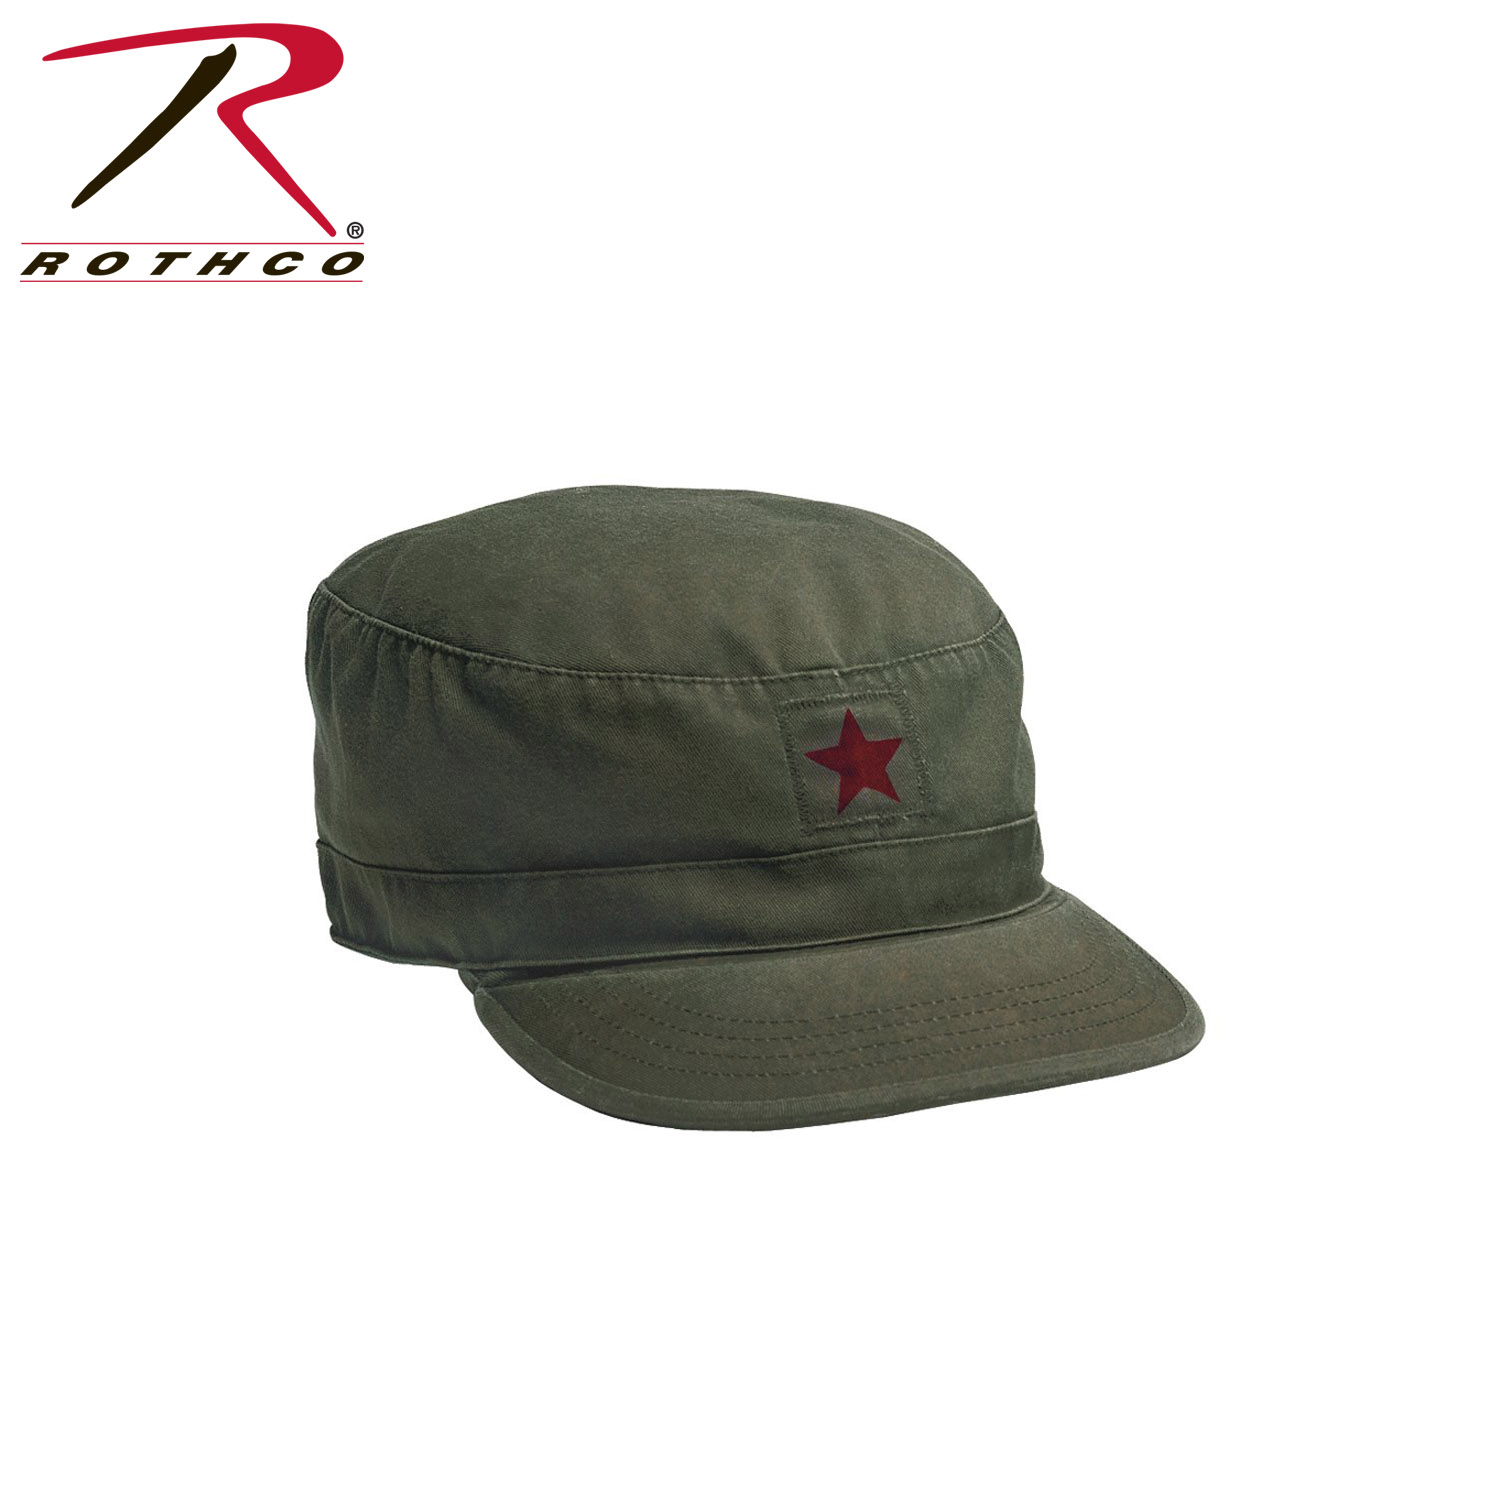 Rothco Vintage Fatigue Cap with Red Star 1cfb45a1623